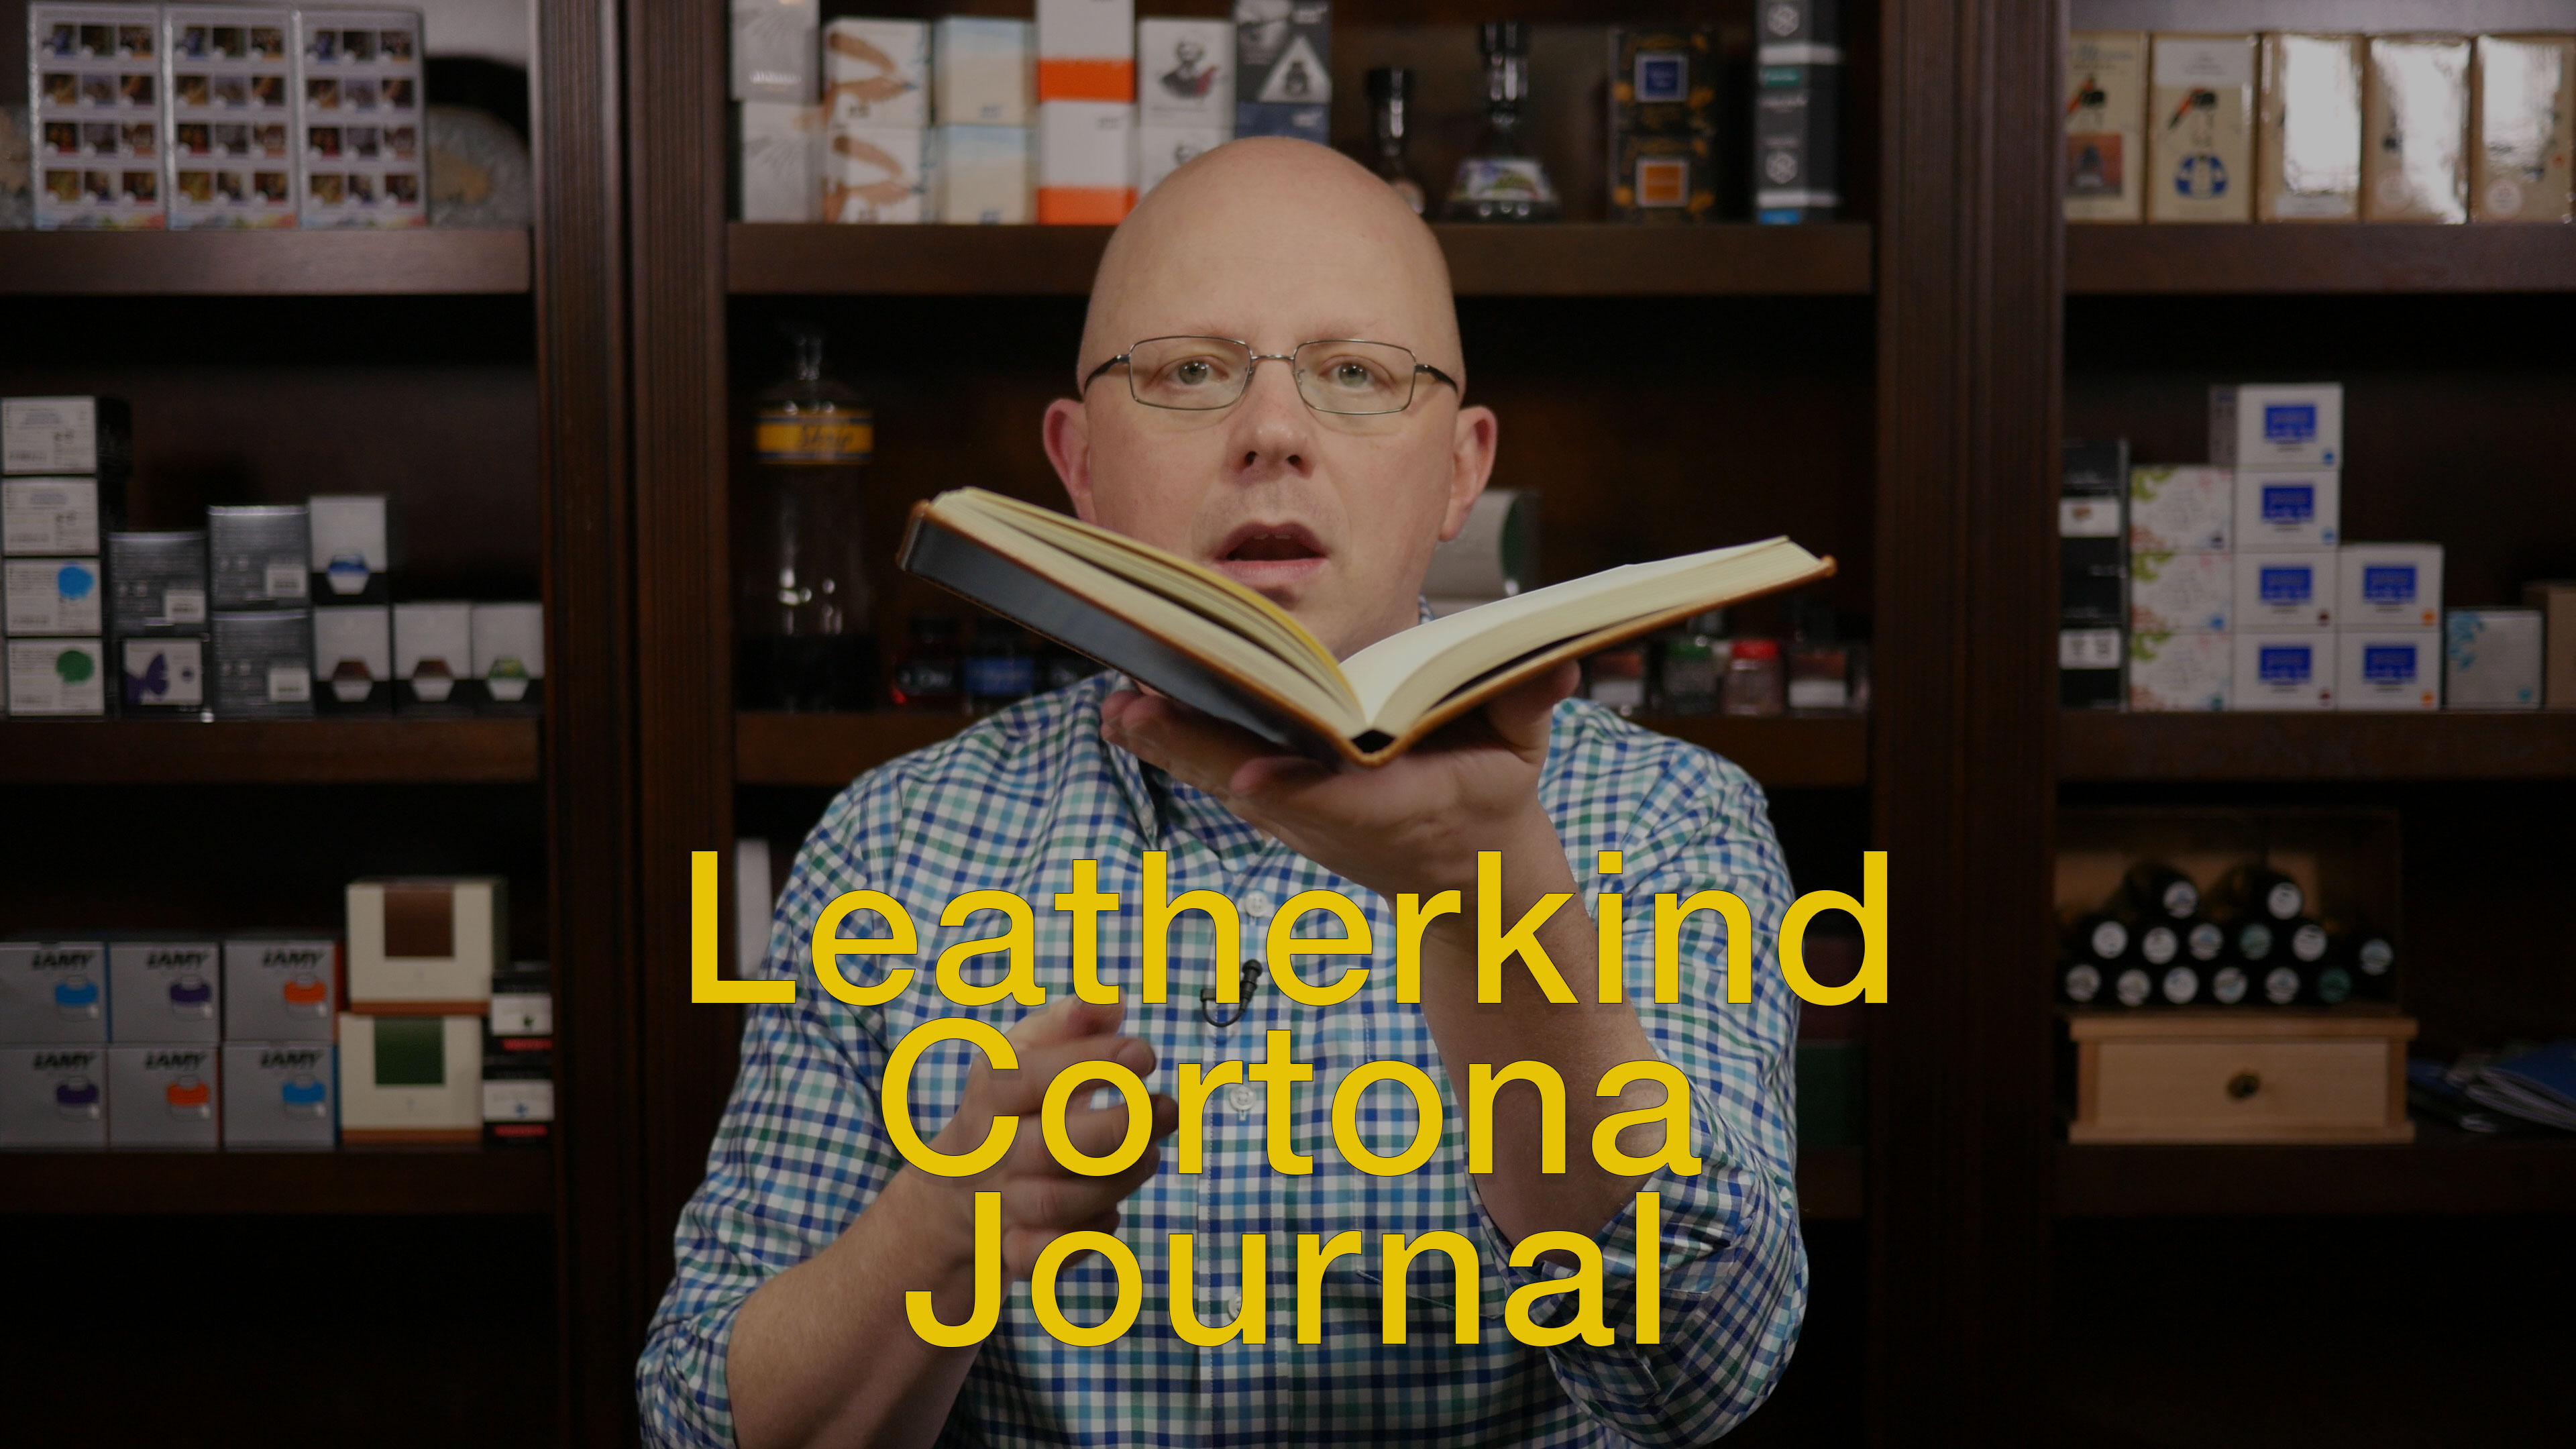 Leatherkind Cortona Journal | Paper Review